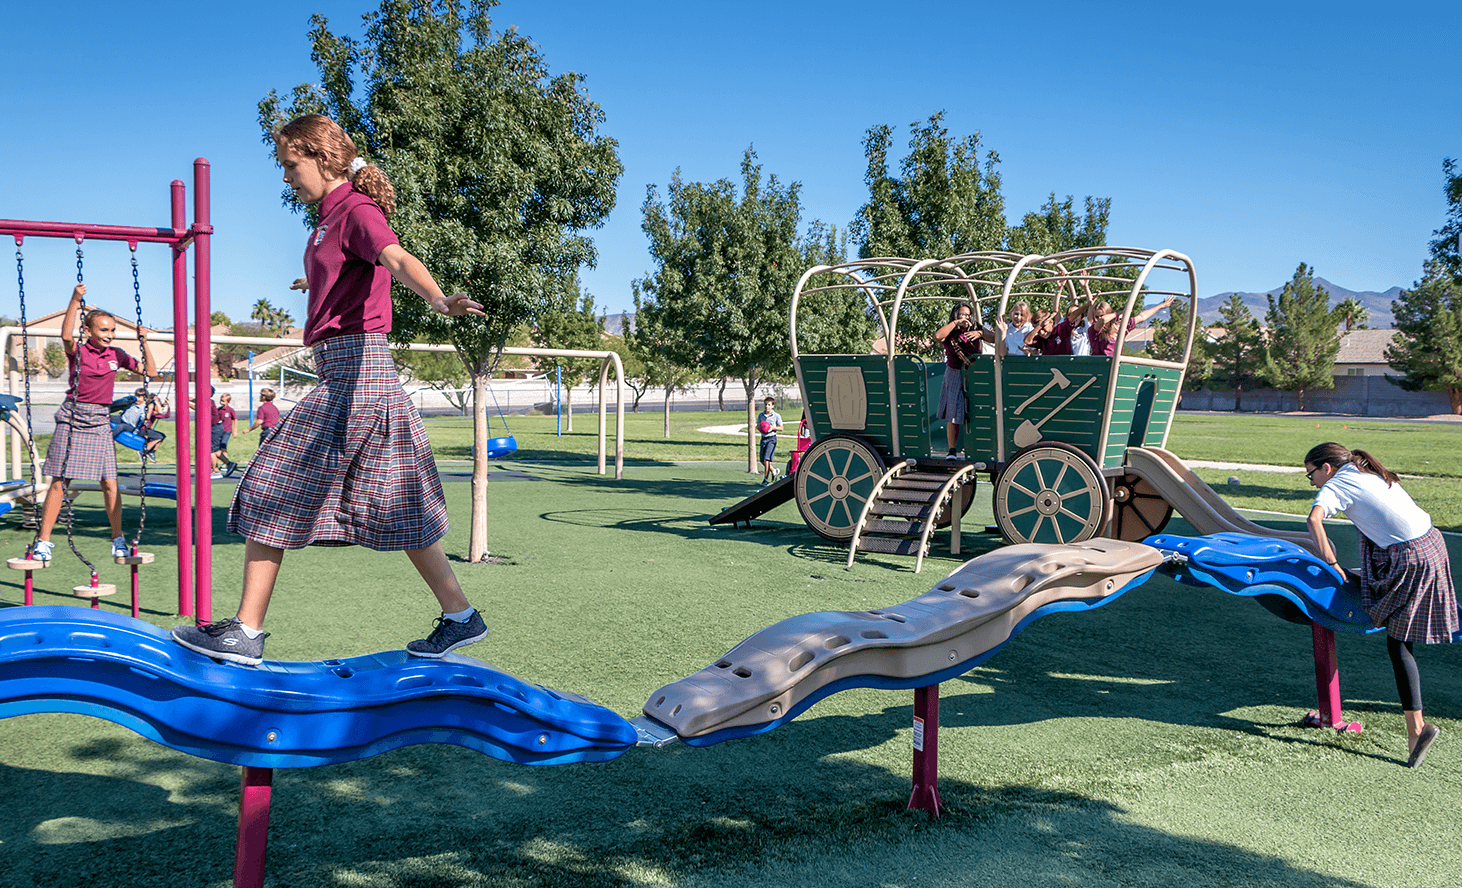 Seesaw | Challenger School - Silverado | Private School In Las Vegas, Nevada